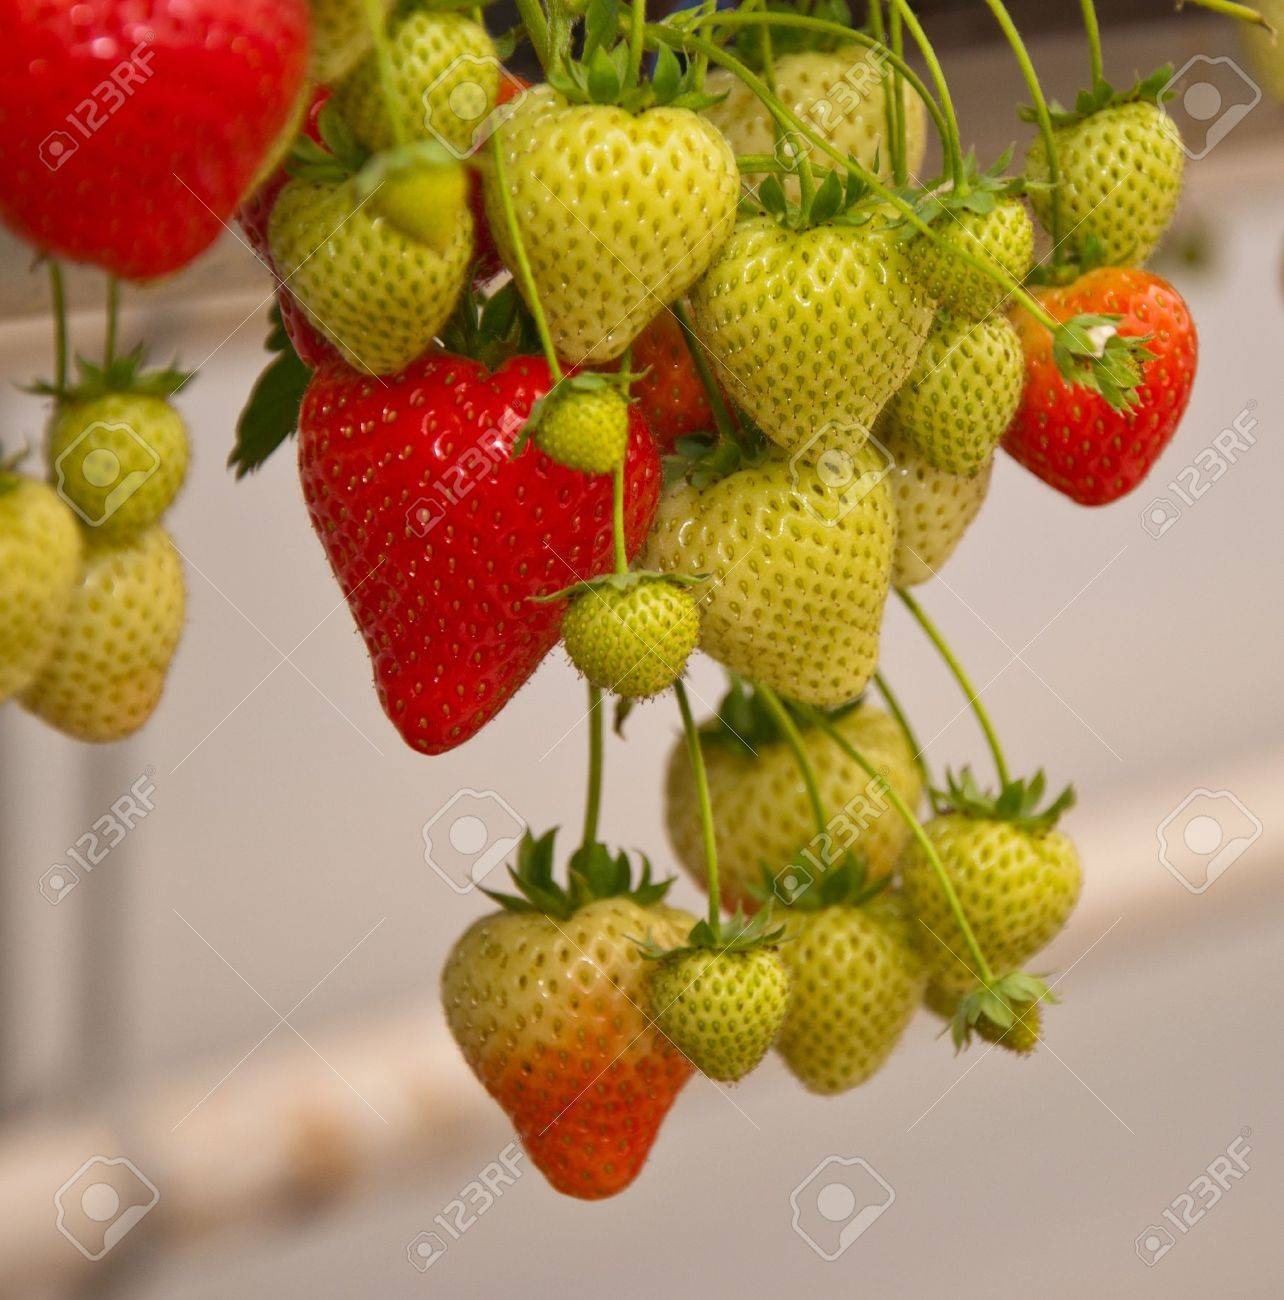 In A Greenhouse The Cultivation Of Hanging Strawberry Plants ...